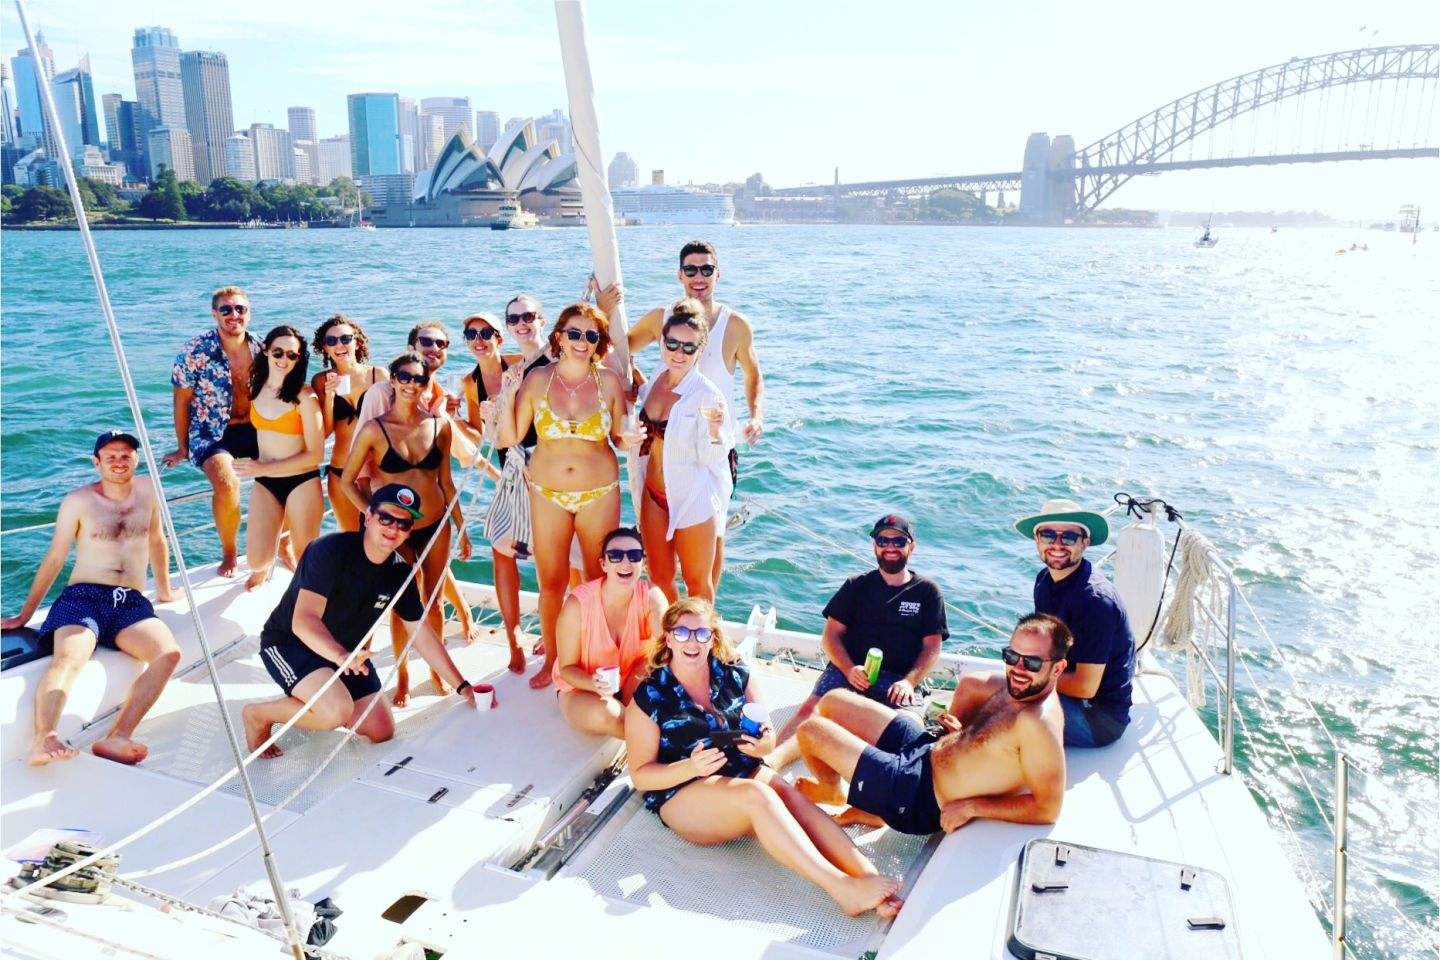 One Ocean - A sustainable approach to catamaran cruising around the pristine harbour.